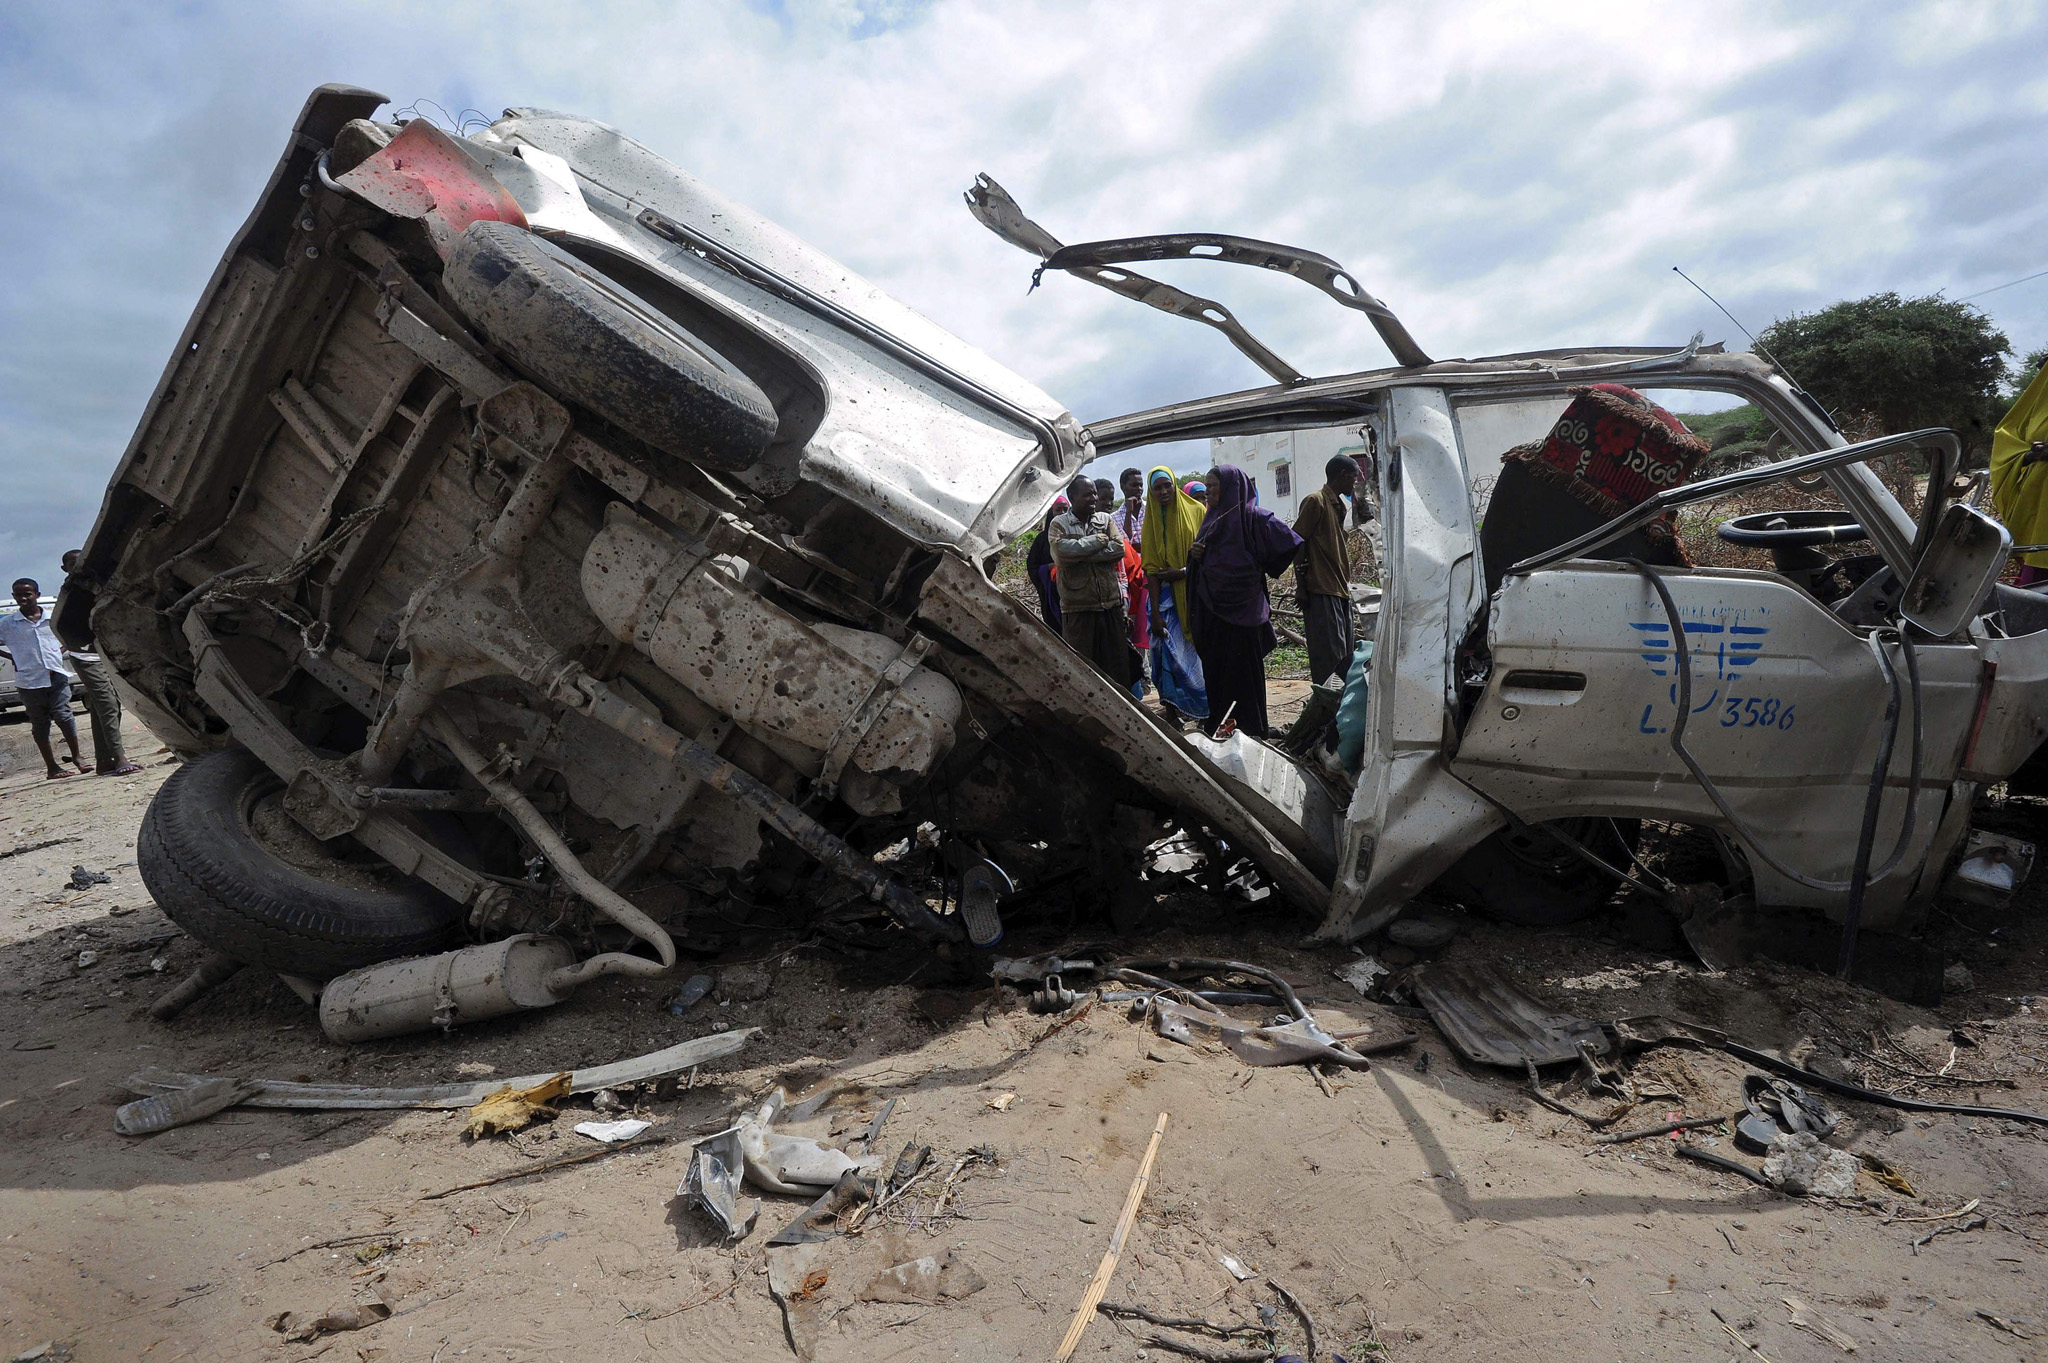 Wreckage of a minibus ripped apart by a landmine just outside Somalia's capital Mogadishu